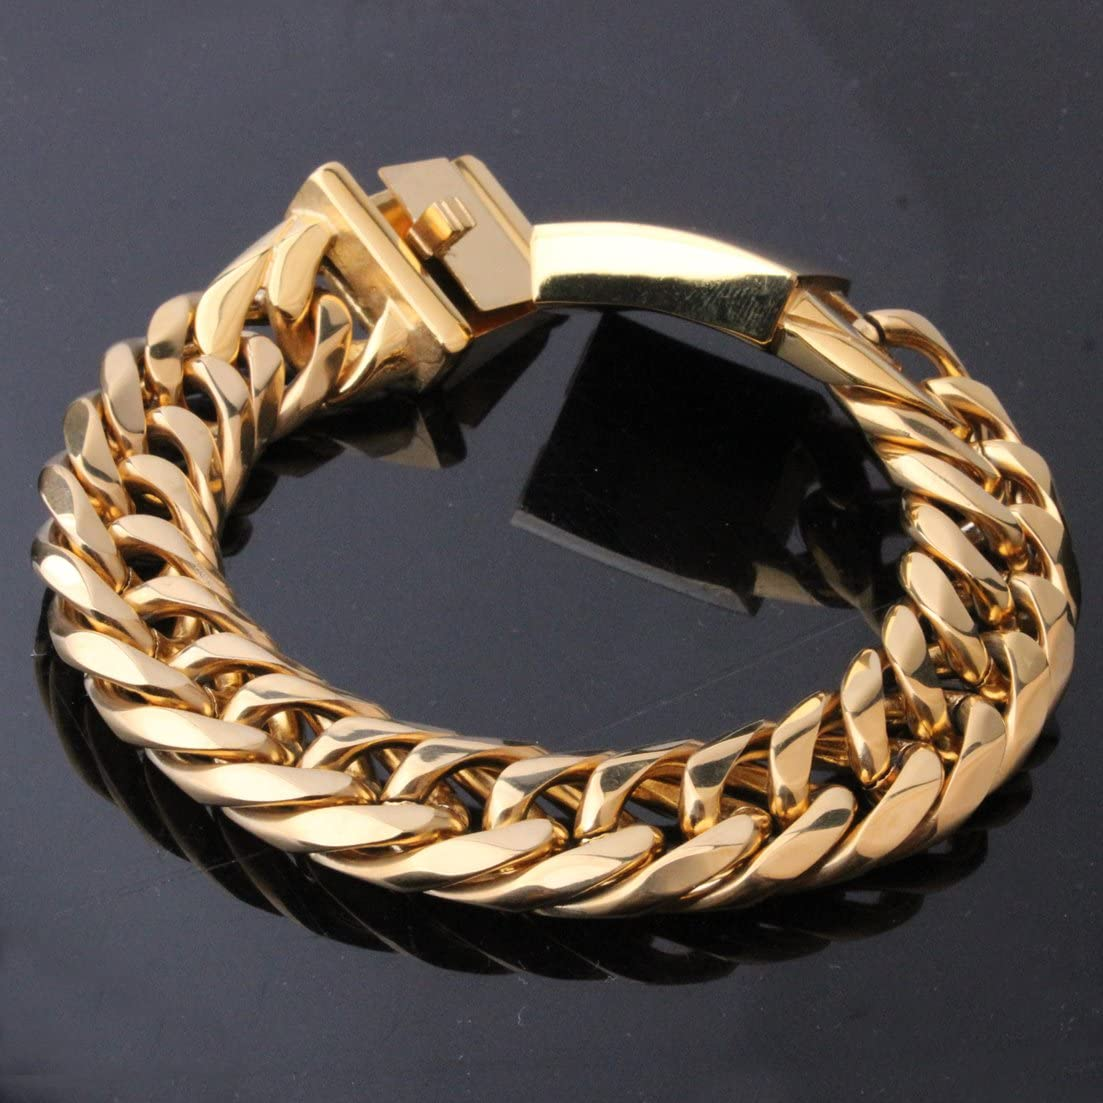 MUYING JEWELRY 16MM Fashion Huge Stainless Steel Charming 18K Gold Plated Curb Cuban Link Chain Mens Necklace Or Bracelet 1PCS